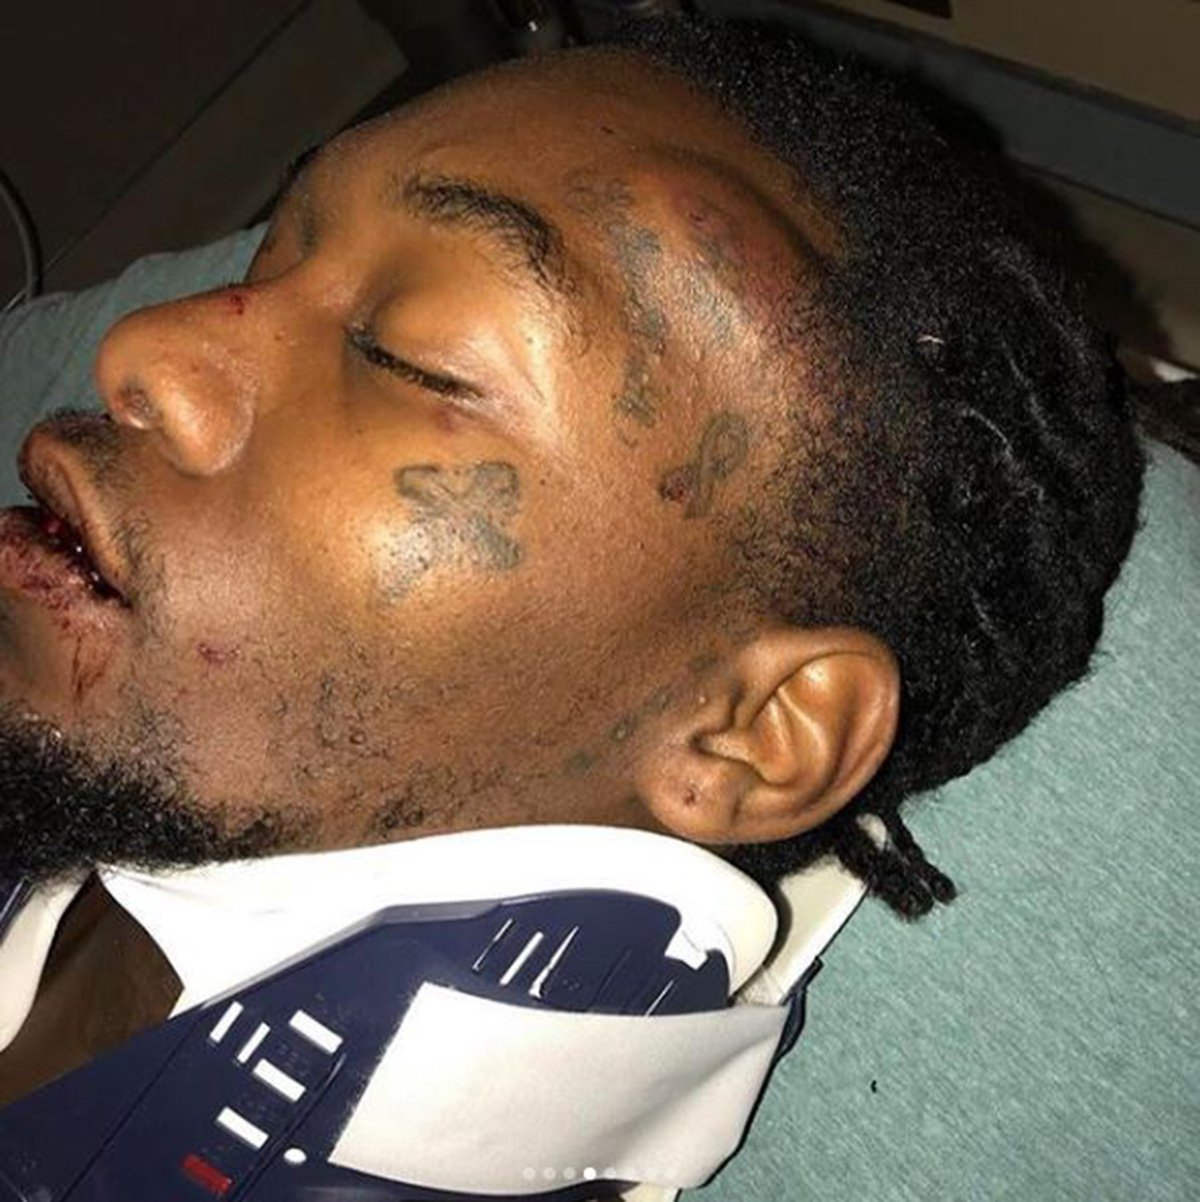 METRO GRAB - taken from the Instagram offsetyrn no permission Offset shares bloody pictures of aftermath of car crash https://www.instagram.com/offsetyrn/?hl=en Instagram/offsetyrn